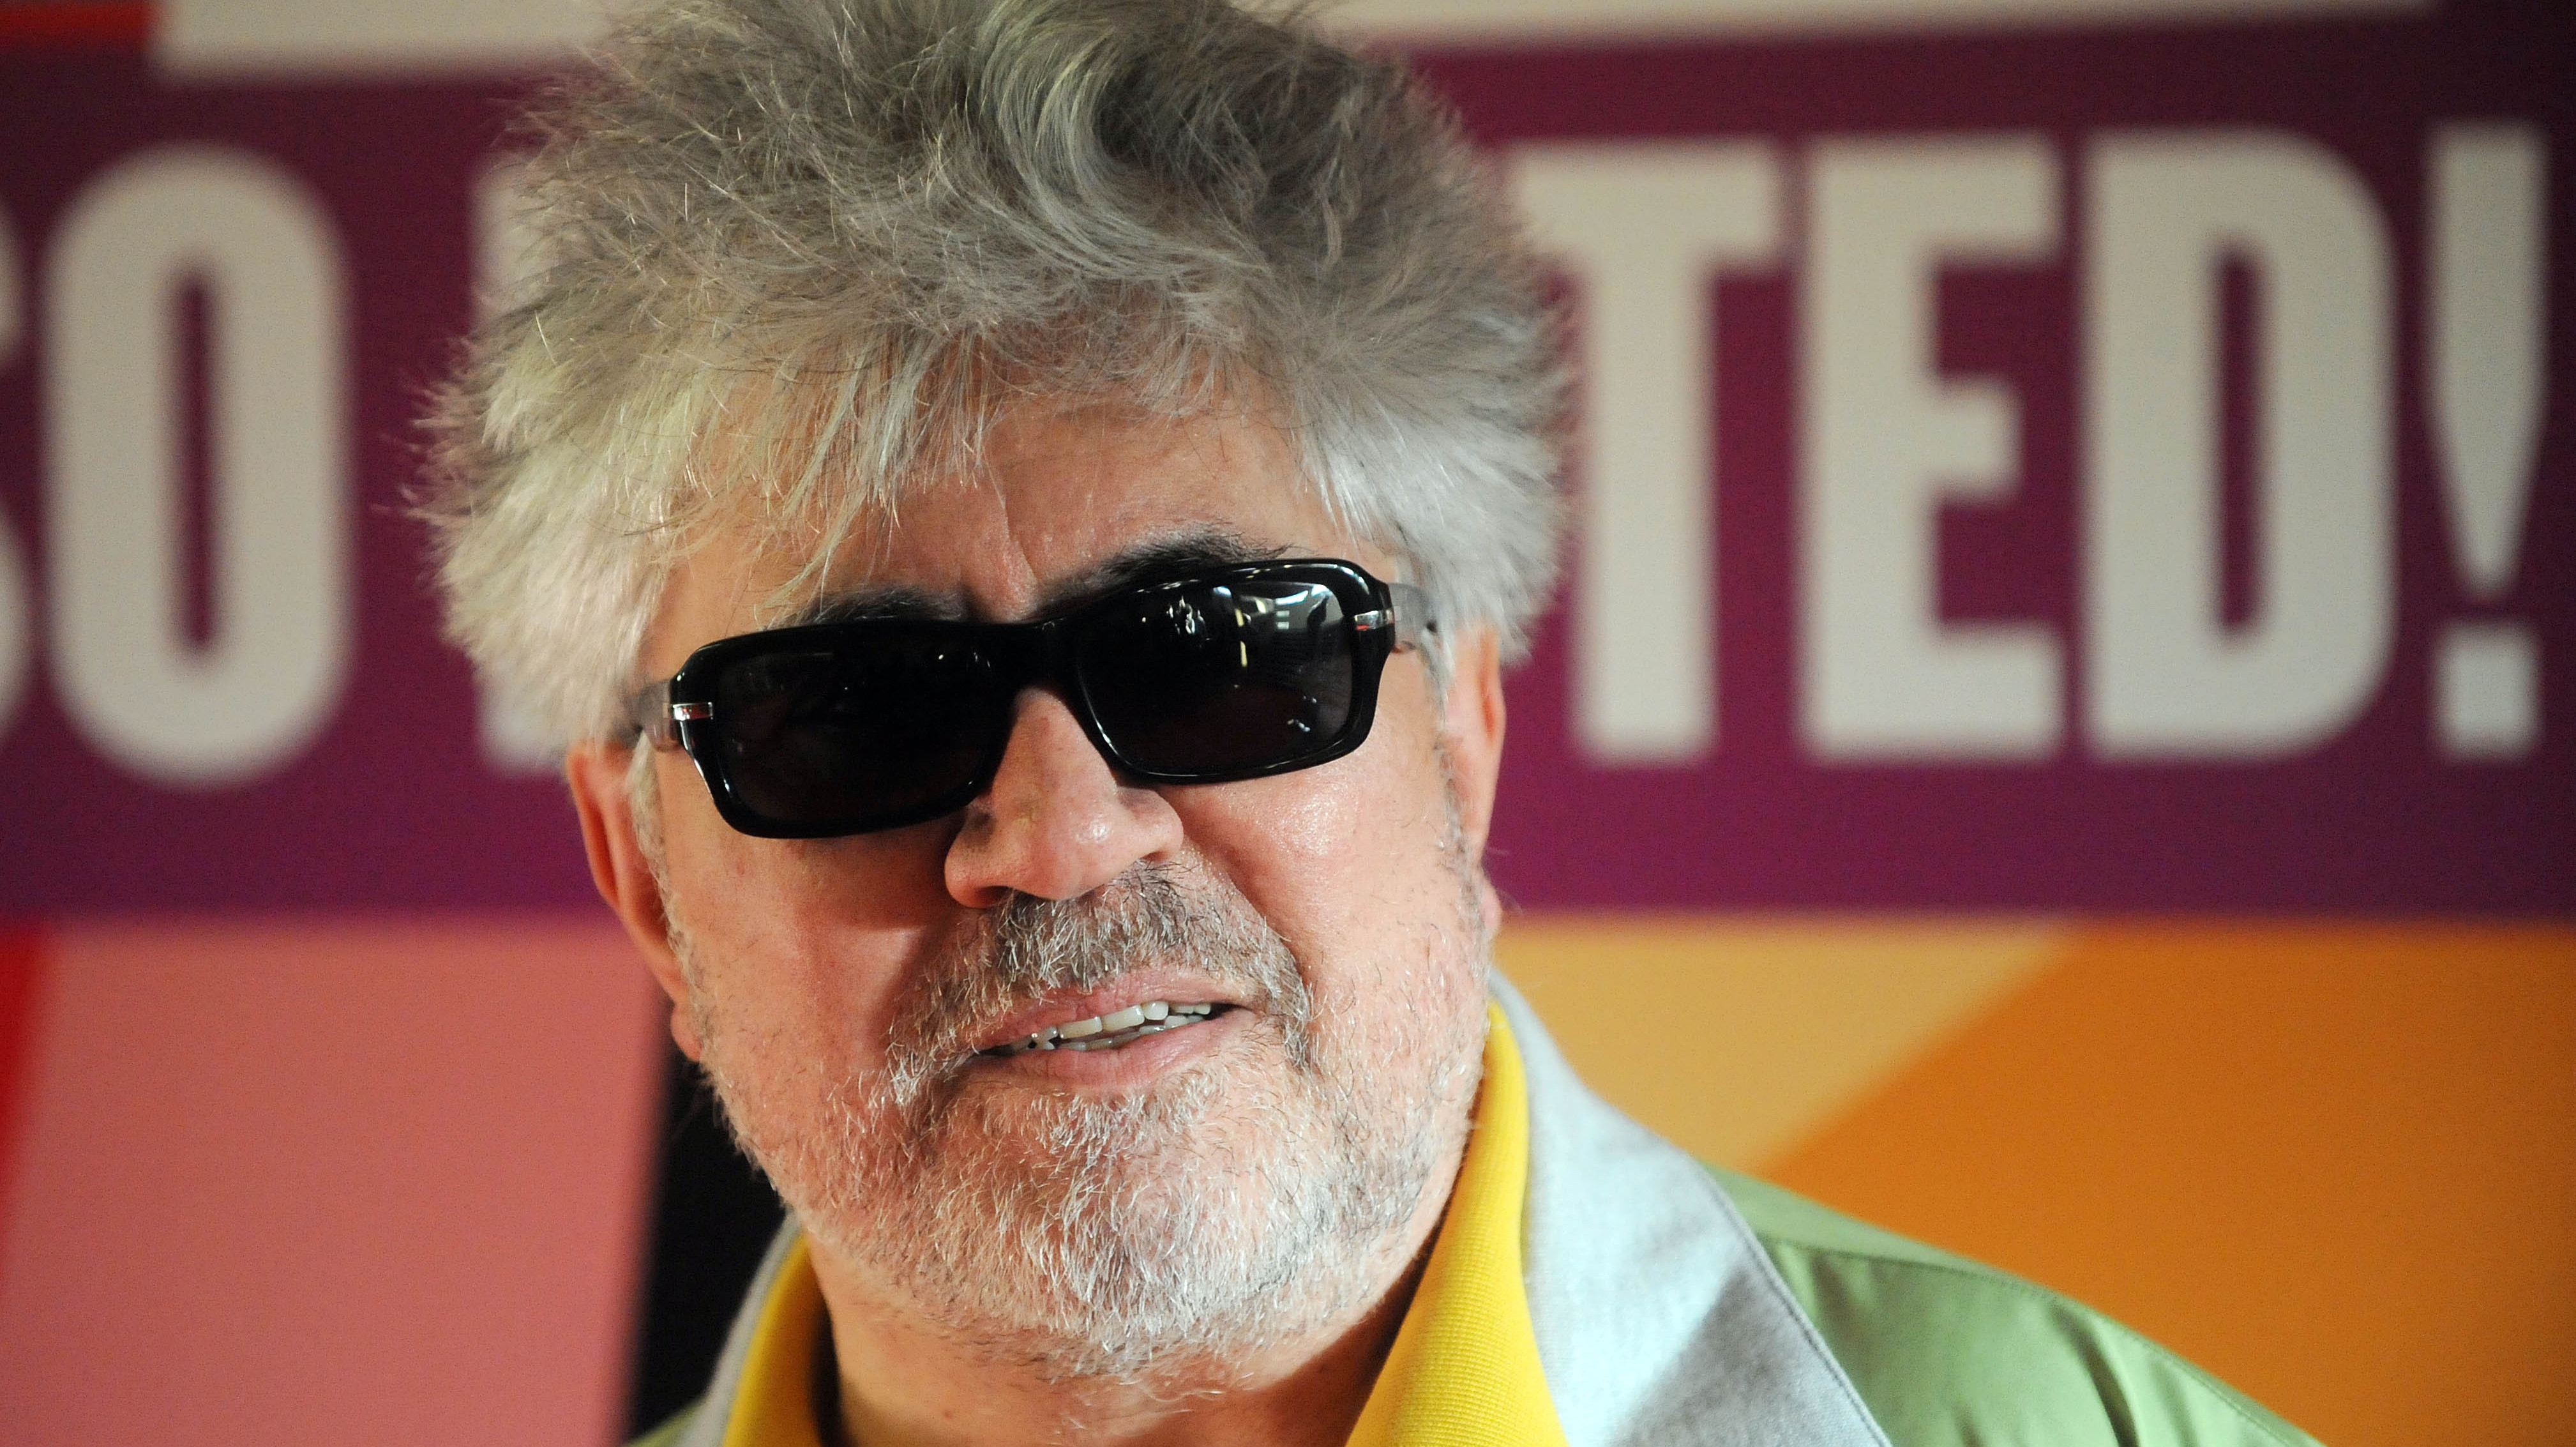 Pedro Almodovar's new film is titled I'm So Excited.